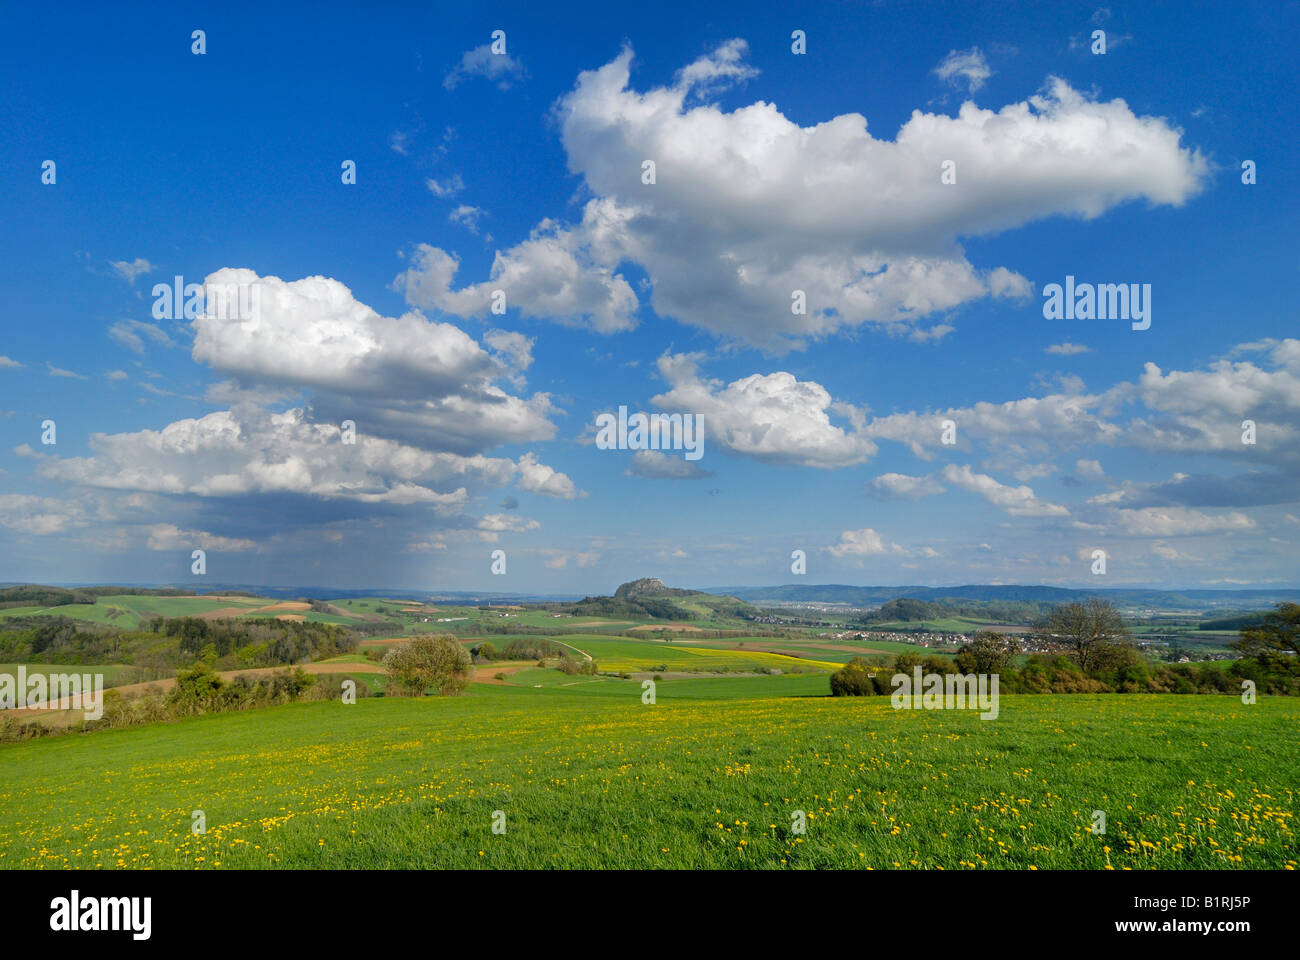 View across the Hegau landscape, Baden-Wuerttemberg, Germany, Europe - Stock Image